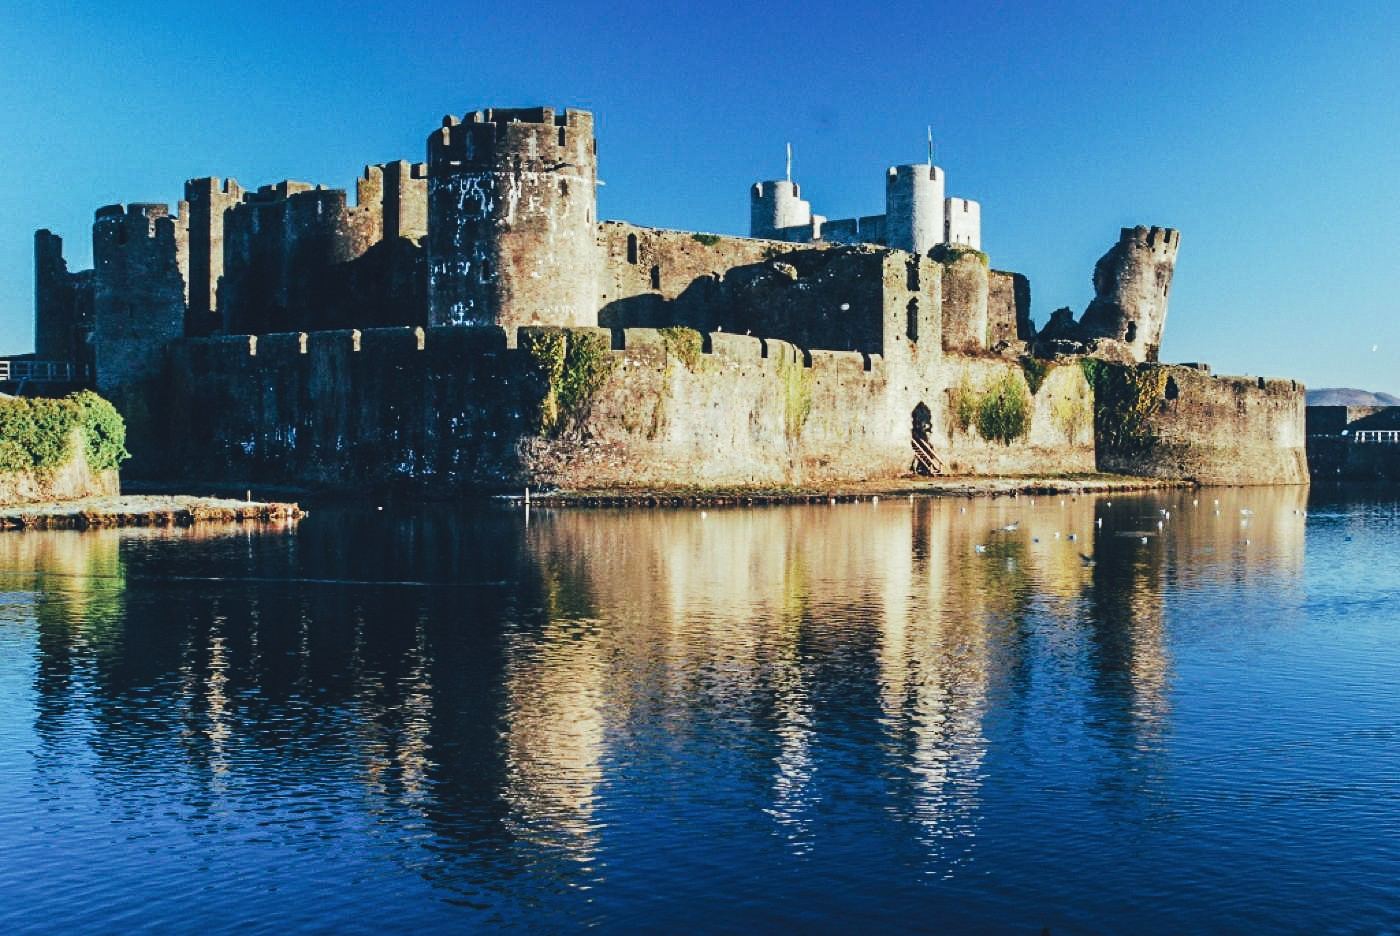 16 Fairytale Castles You Must See in Wales! Beaumaris Castle Caernarfon Castle Caerphilly Castle Carreg Cennen Castle Castell Coch Chepstow Castle Conwy Castle Criccieth Castle Denbigh Castle Dolwyddelan Castle Harlech Castle Kidwelly Castle Raglan Castle St Davids Bishop's Palace Tintern Abbey Tretower Court & Castle Weobley Castle (3)